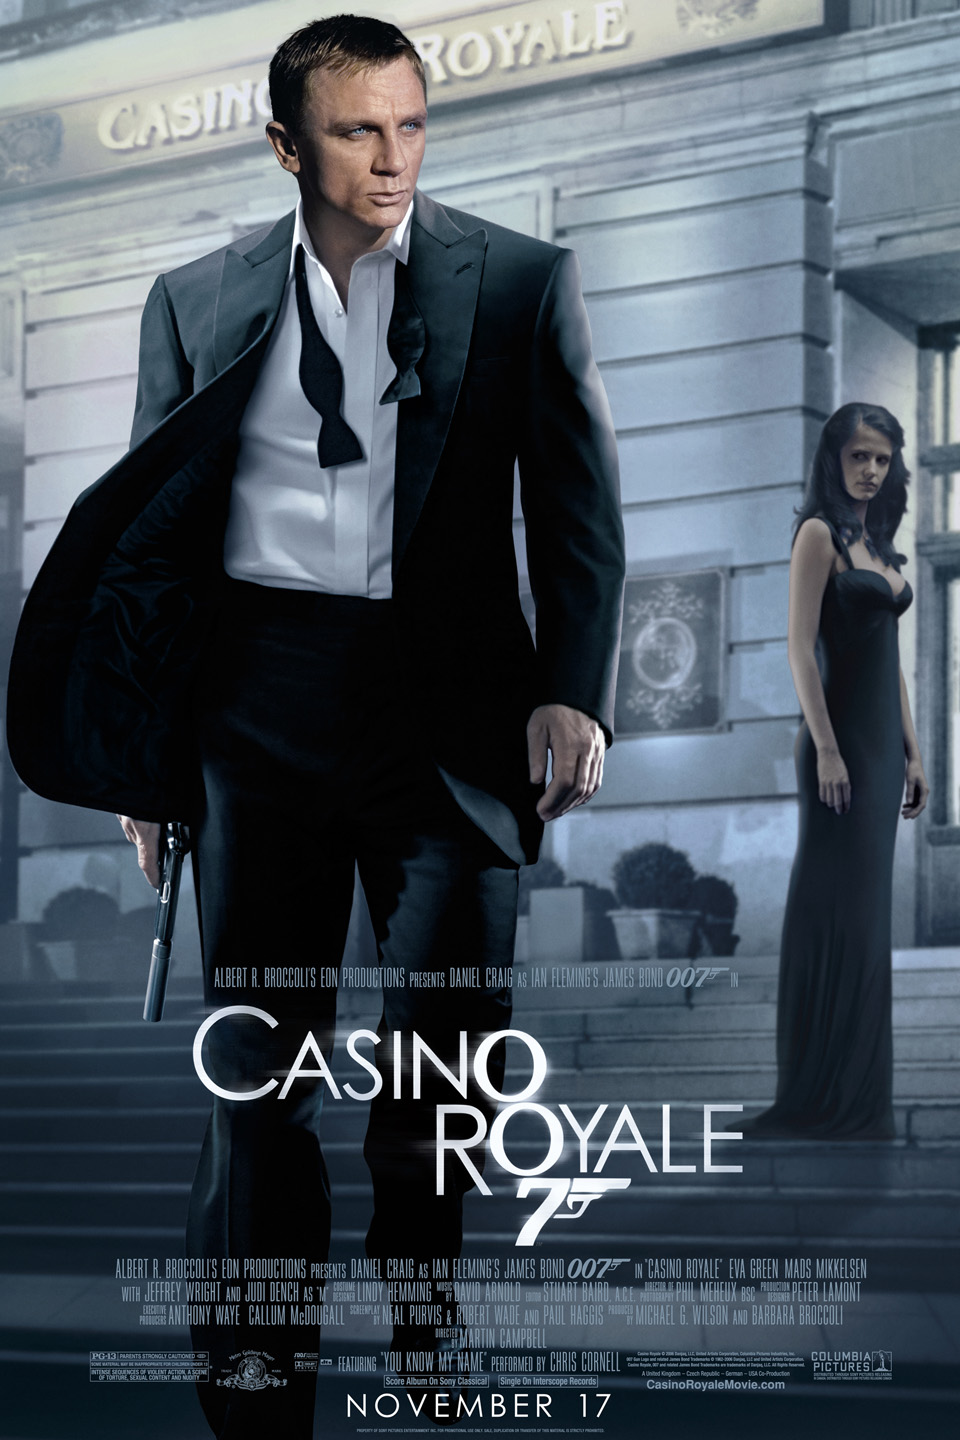 james bond casino royale full movie online bookofra online